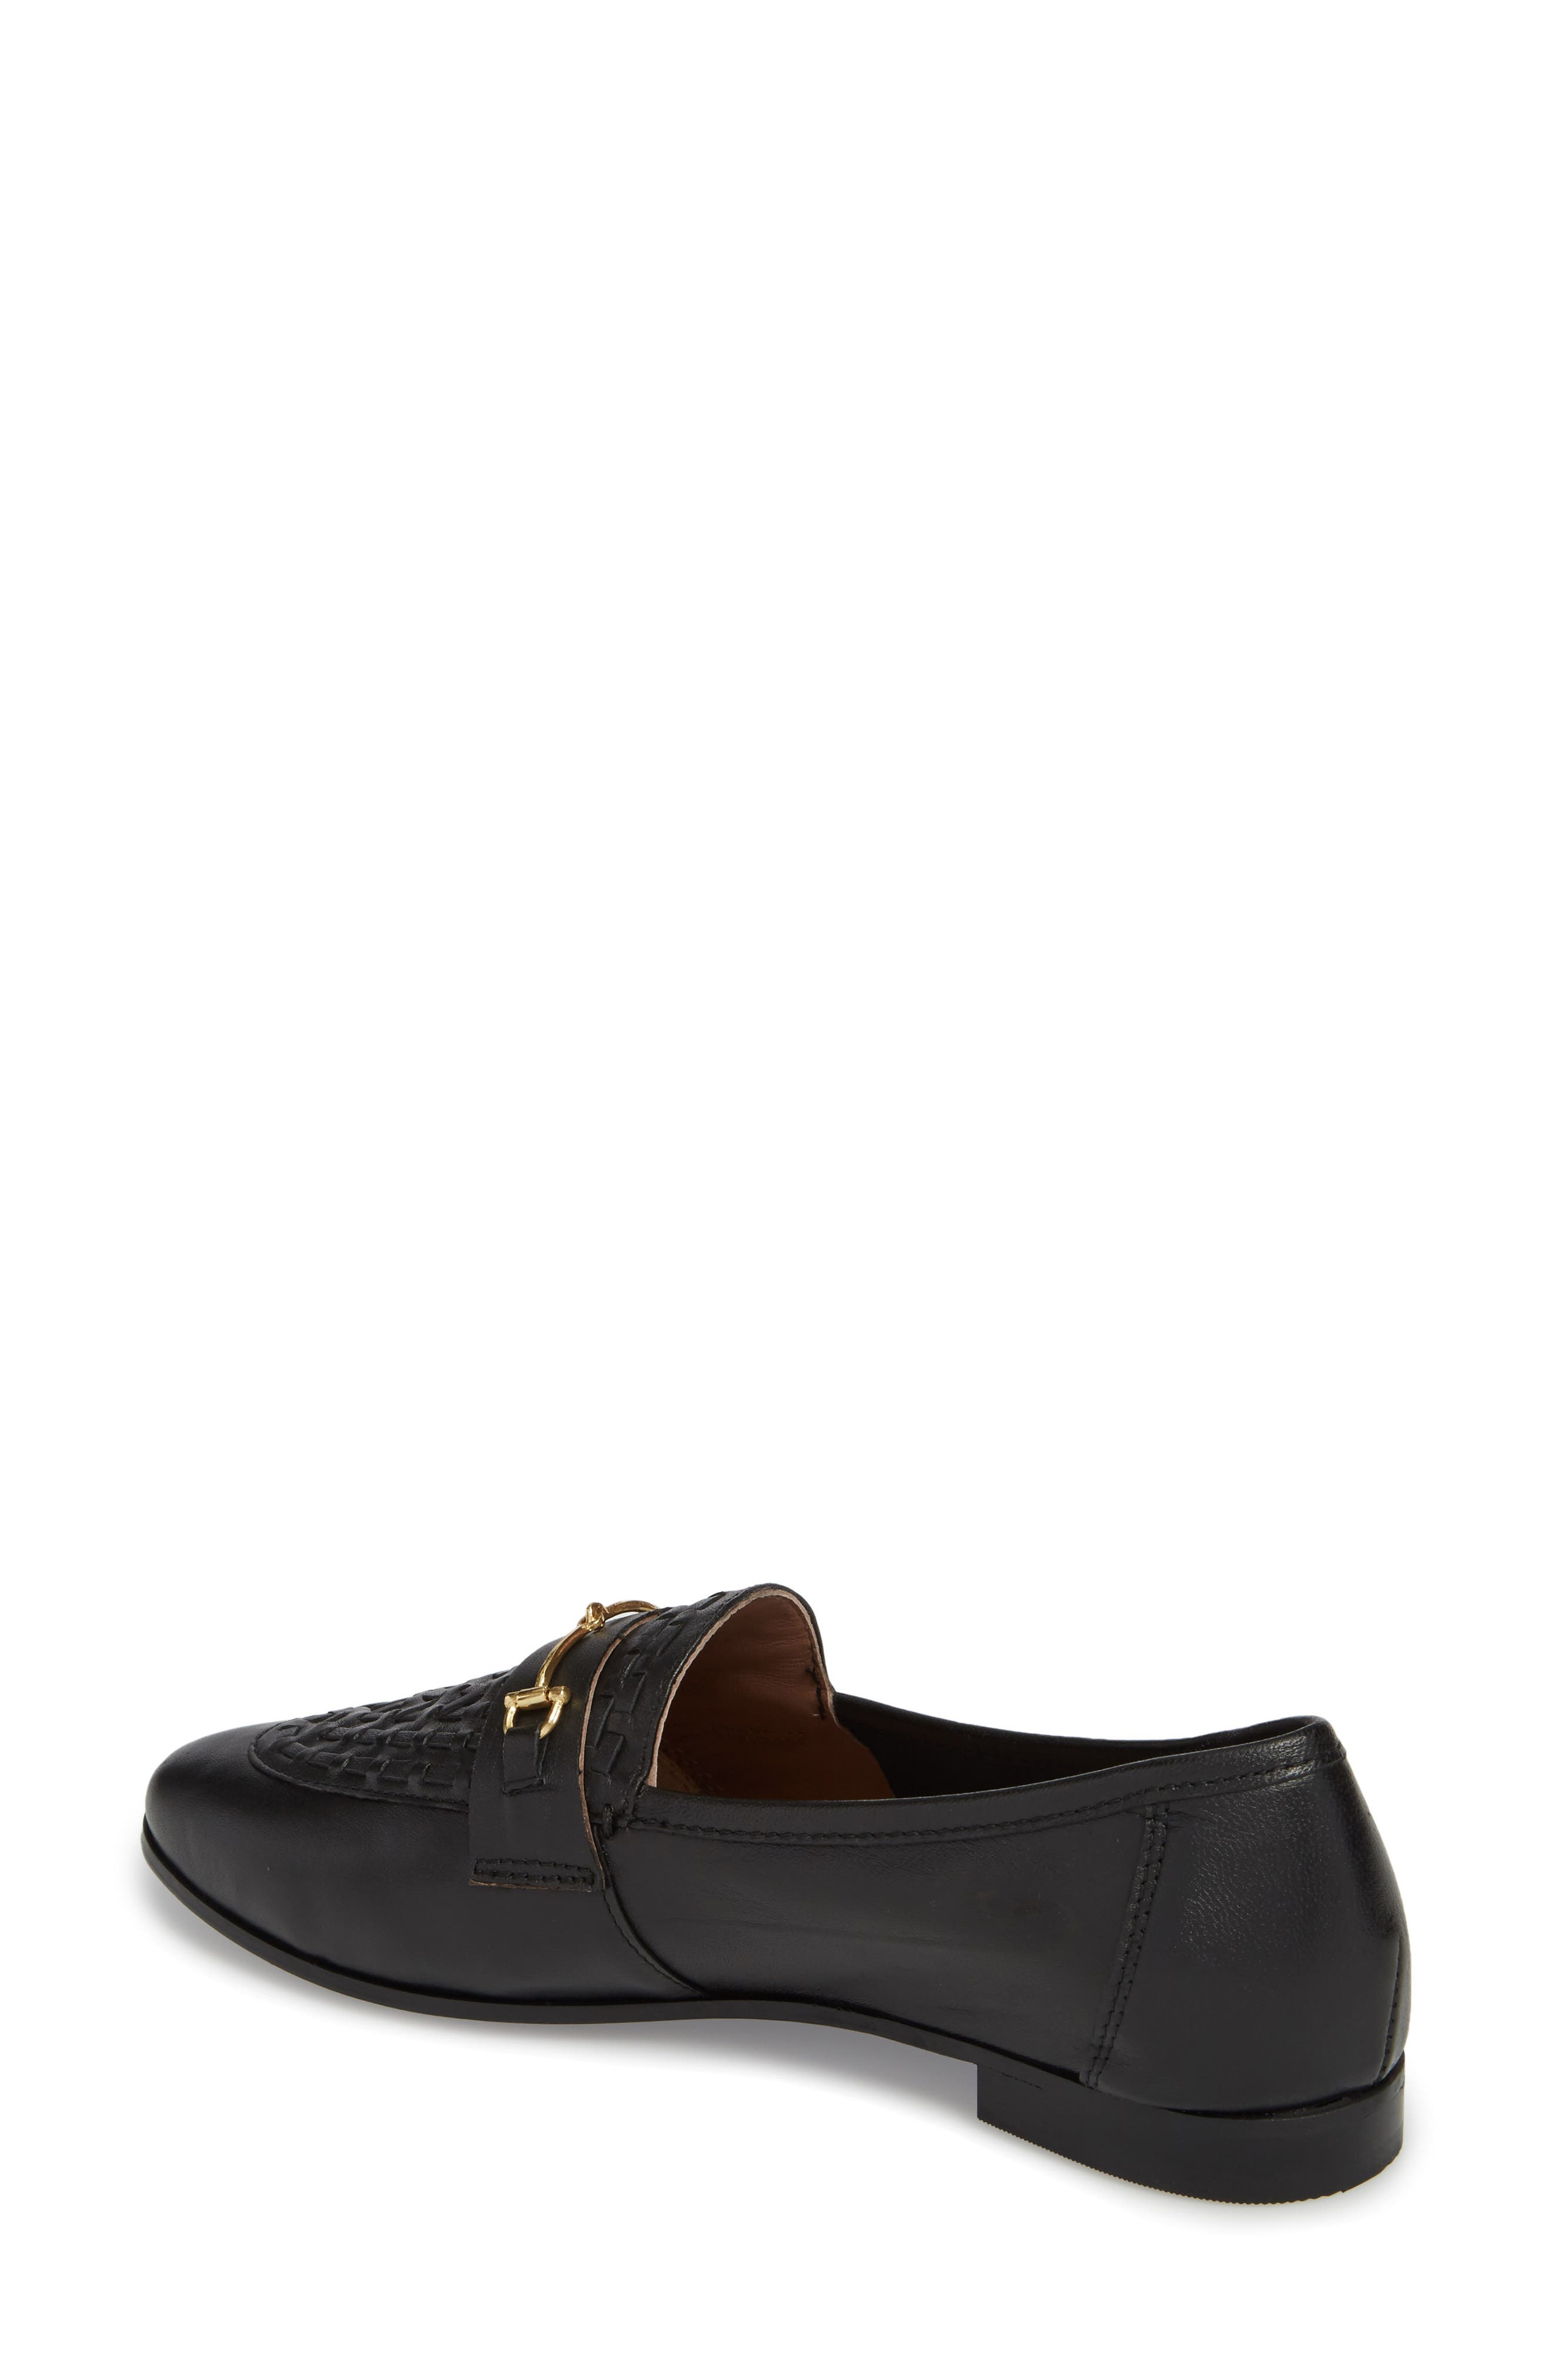 Topshop Kingley Woven Loafers sWjxQvx